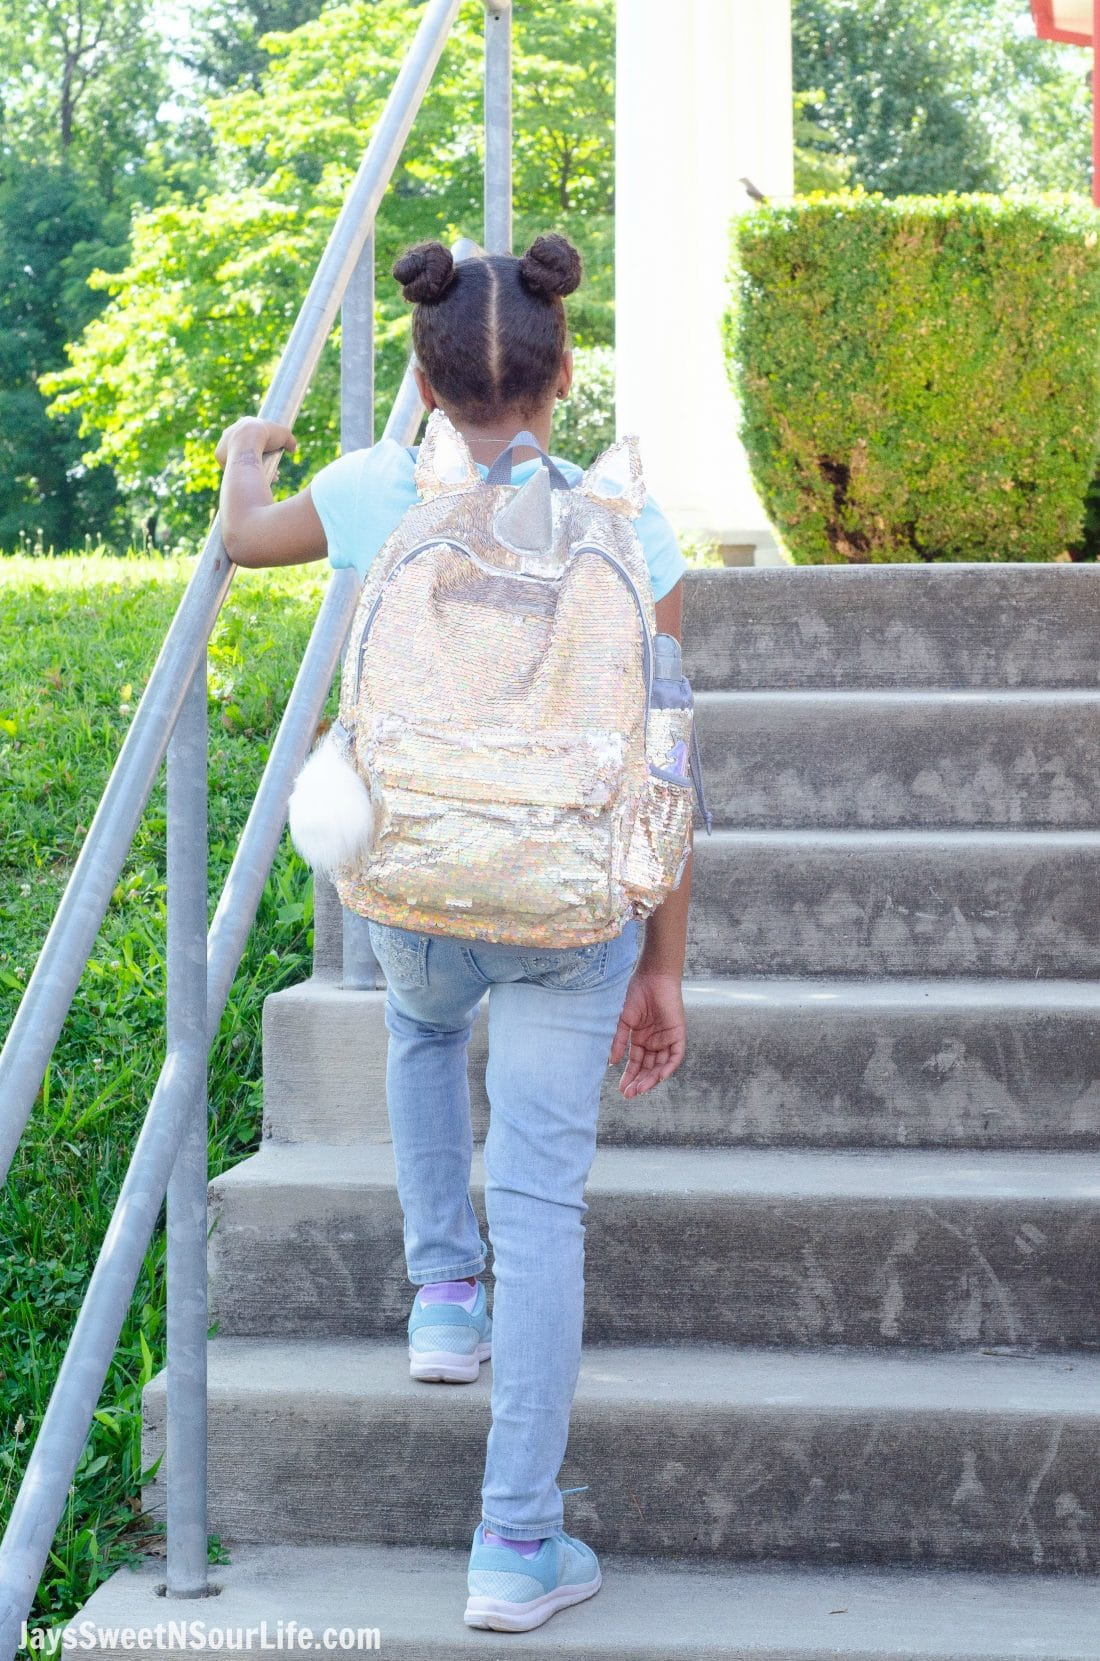 Justice Back To School Unicorn Backpack Lifestyle Shot. Back To School Must Have Fashion For Tweens via JaysSweetNSourLife.com